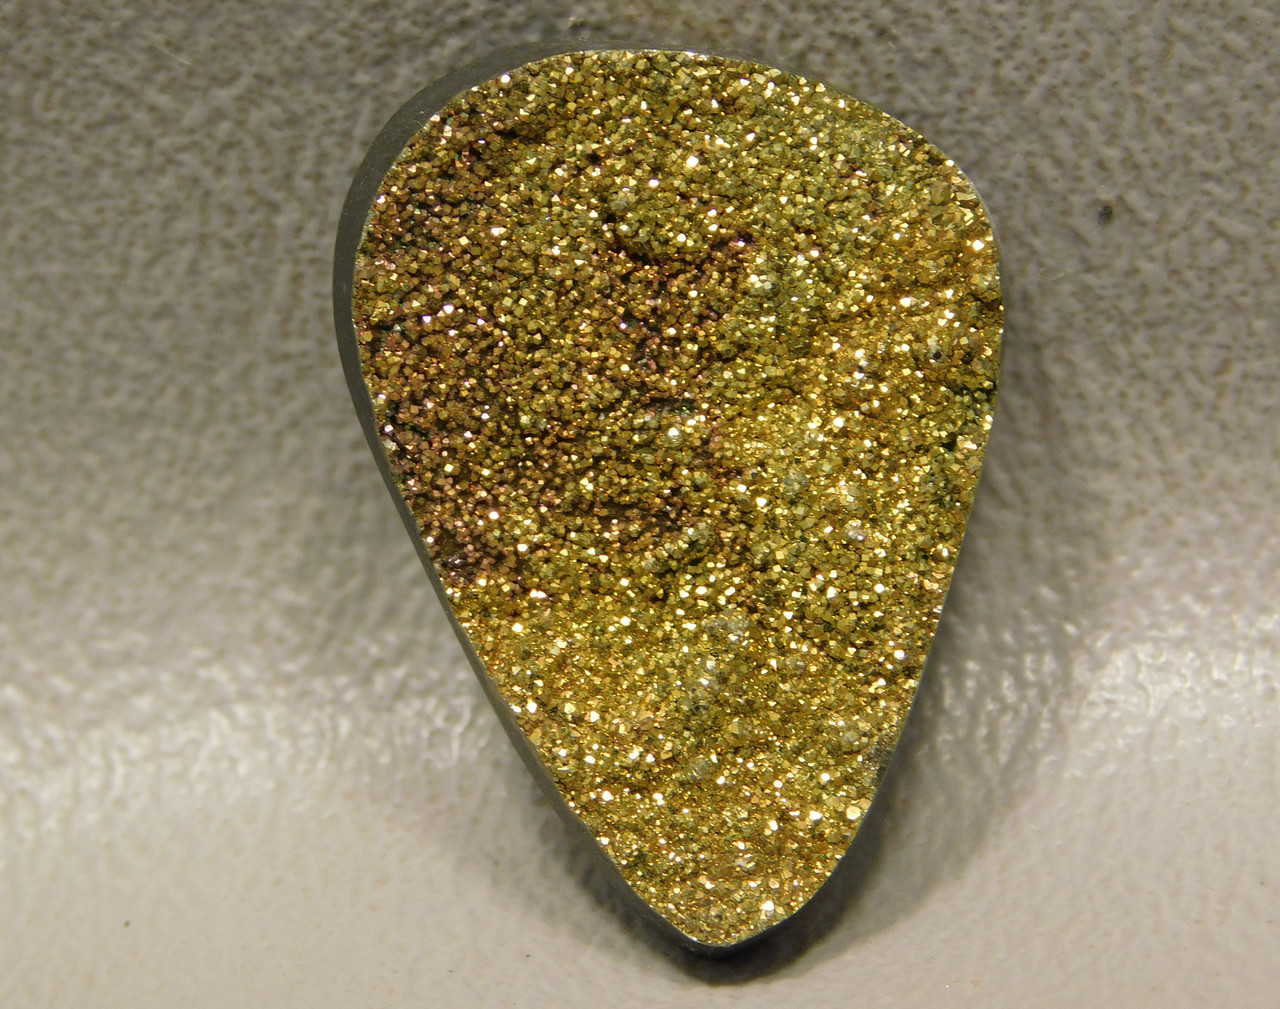 Rainbow Pyrite Small Stone Cabochon Wire Wrapping Supplies #5